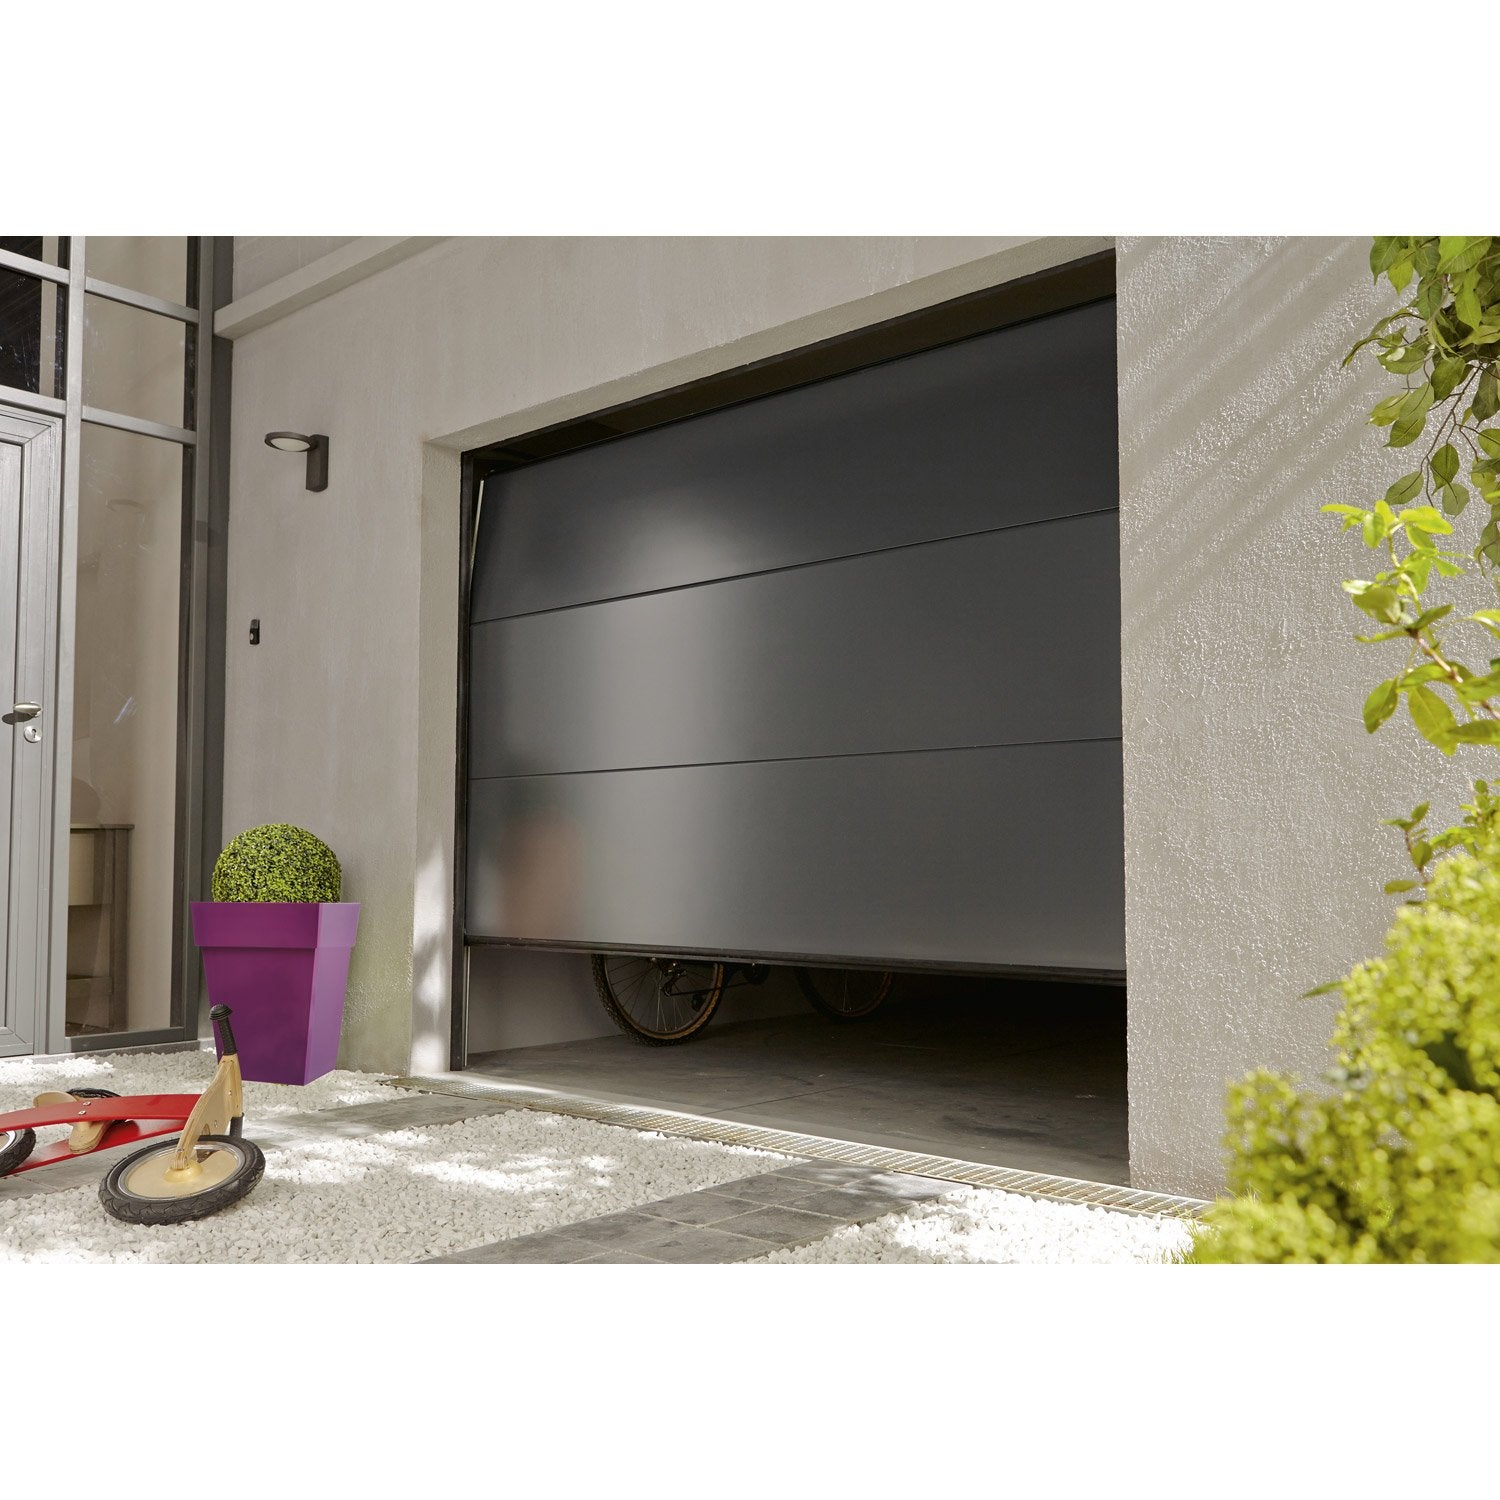 Porte de garage sectionnelle artens x cm for Dimension portillon standard